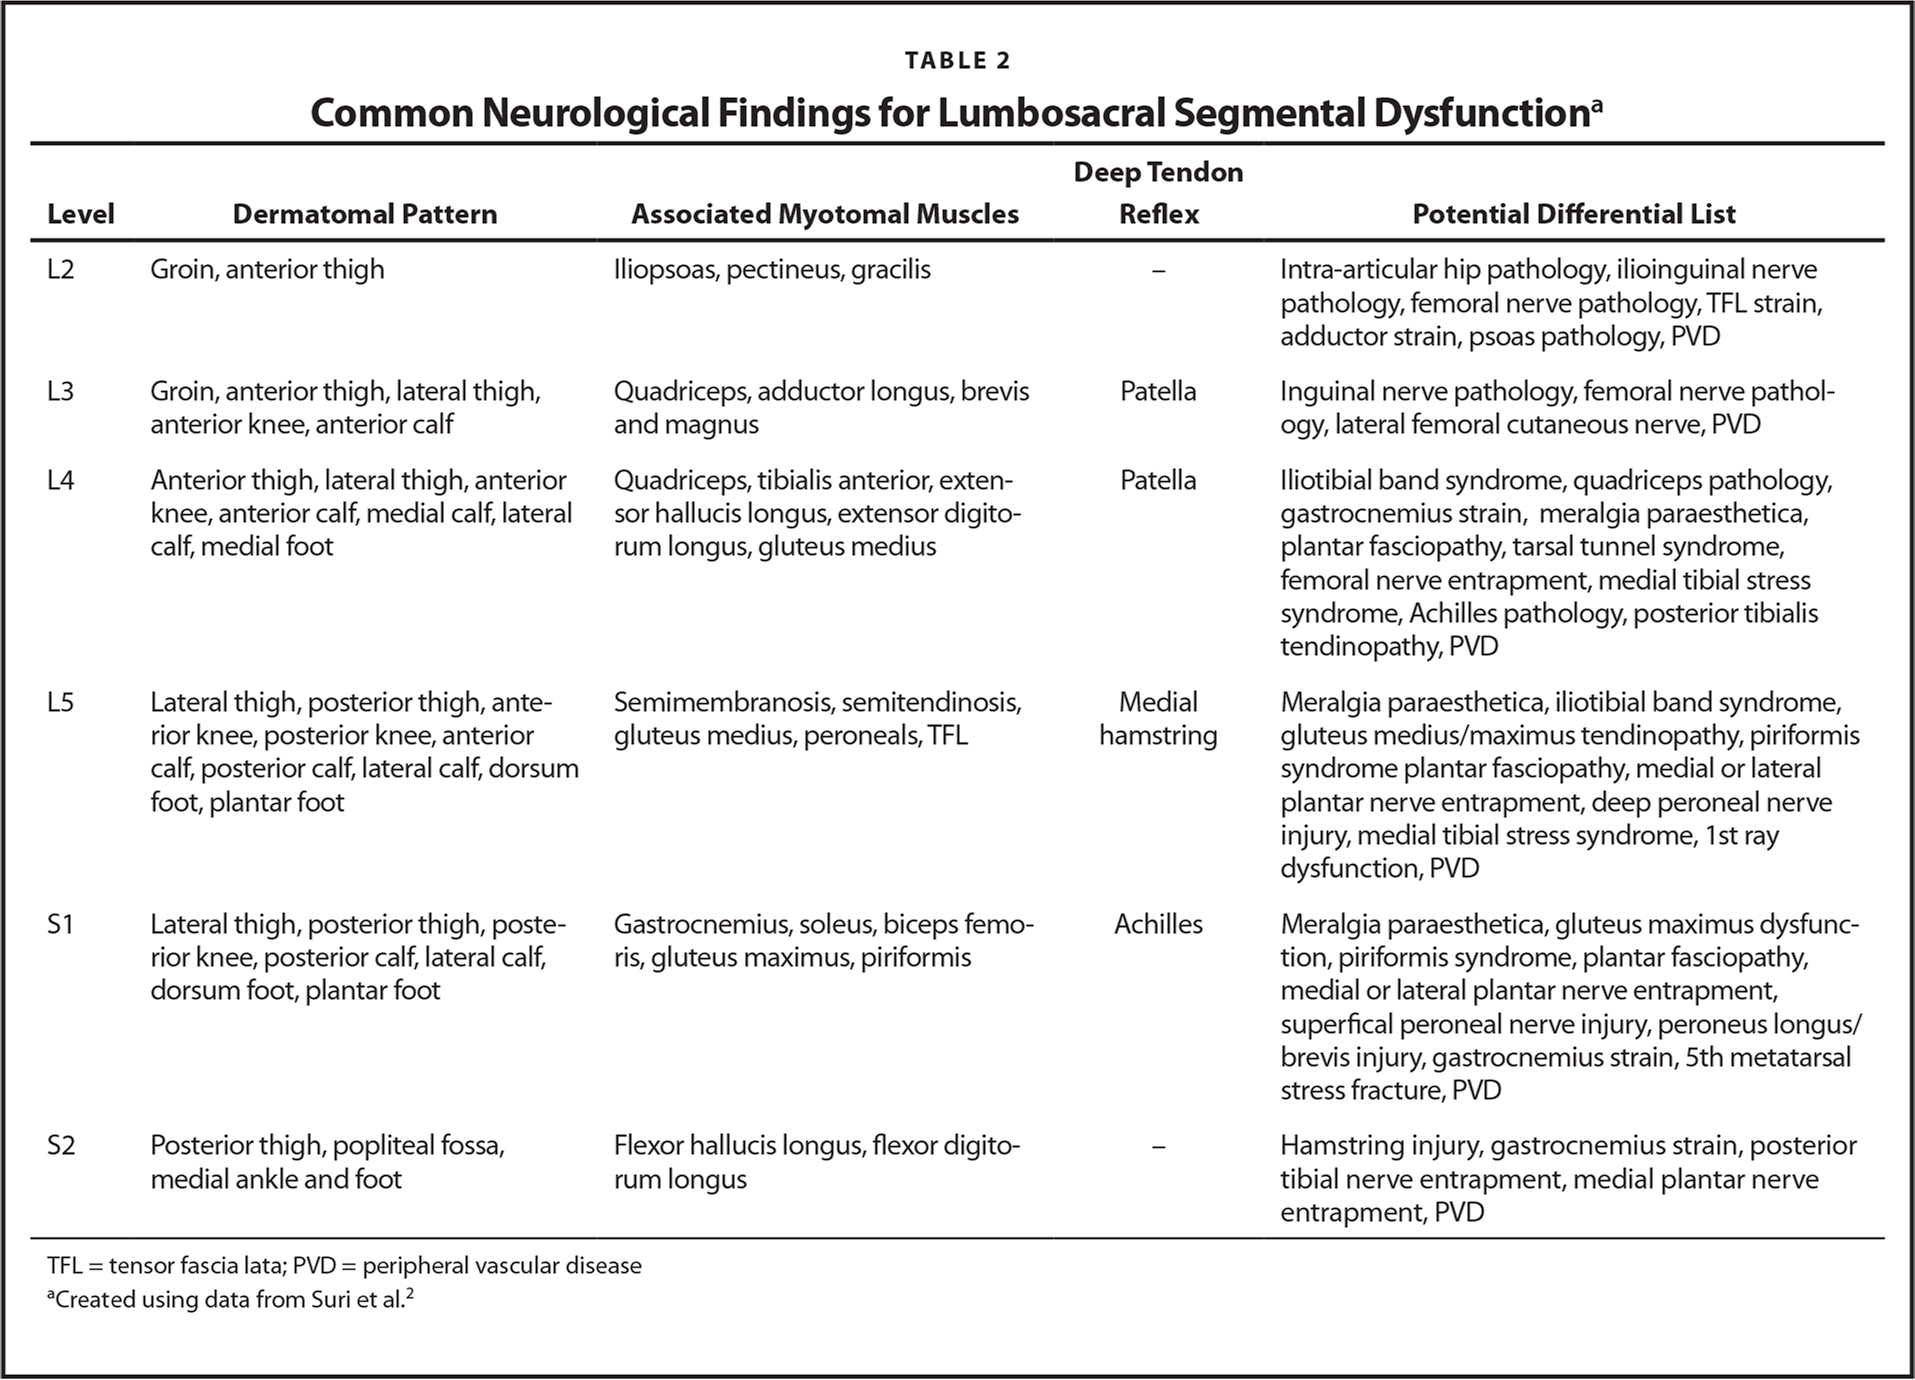 Common Neurological Findings for Lumbosacral Segmental Dysfunctiona